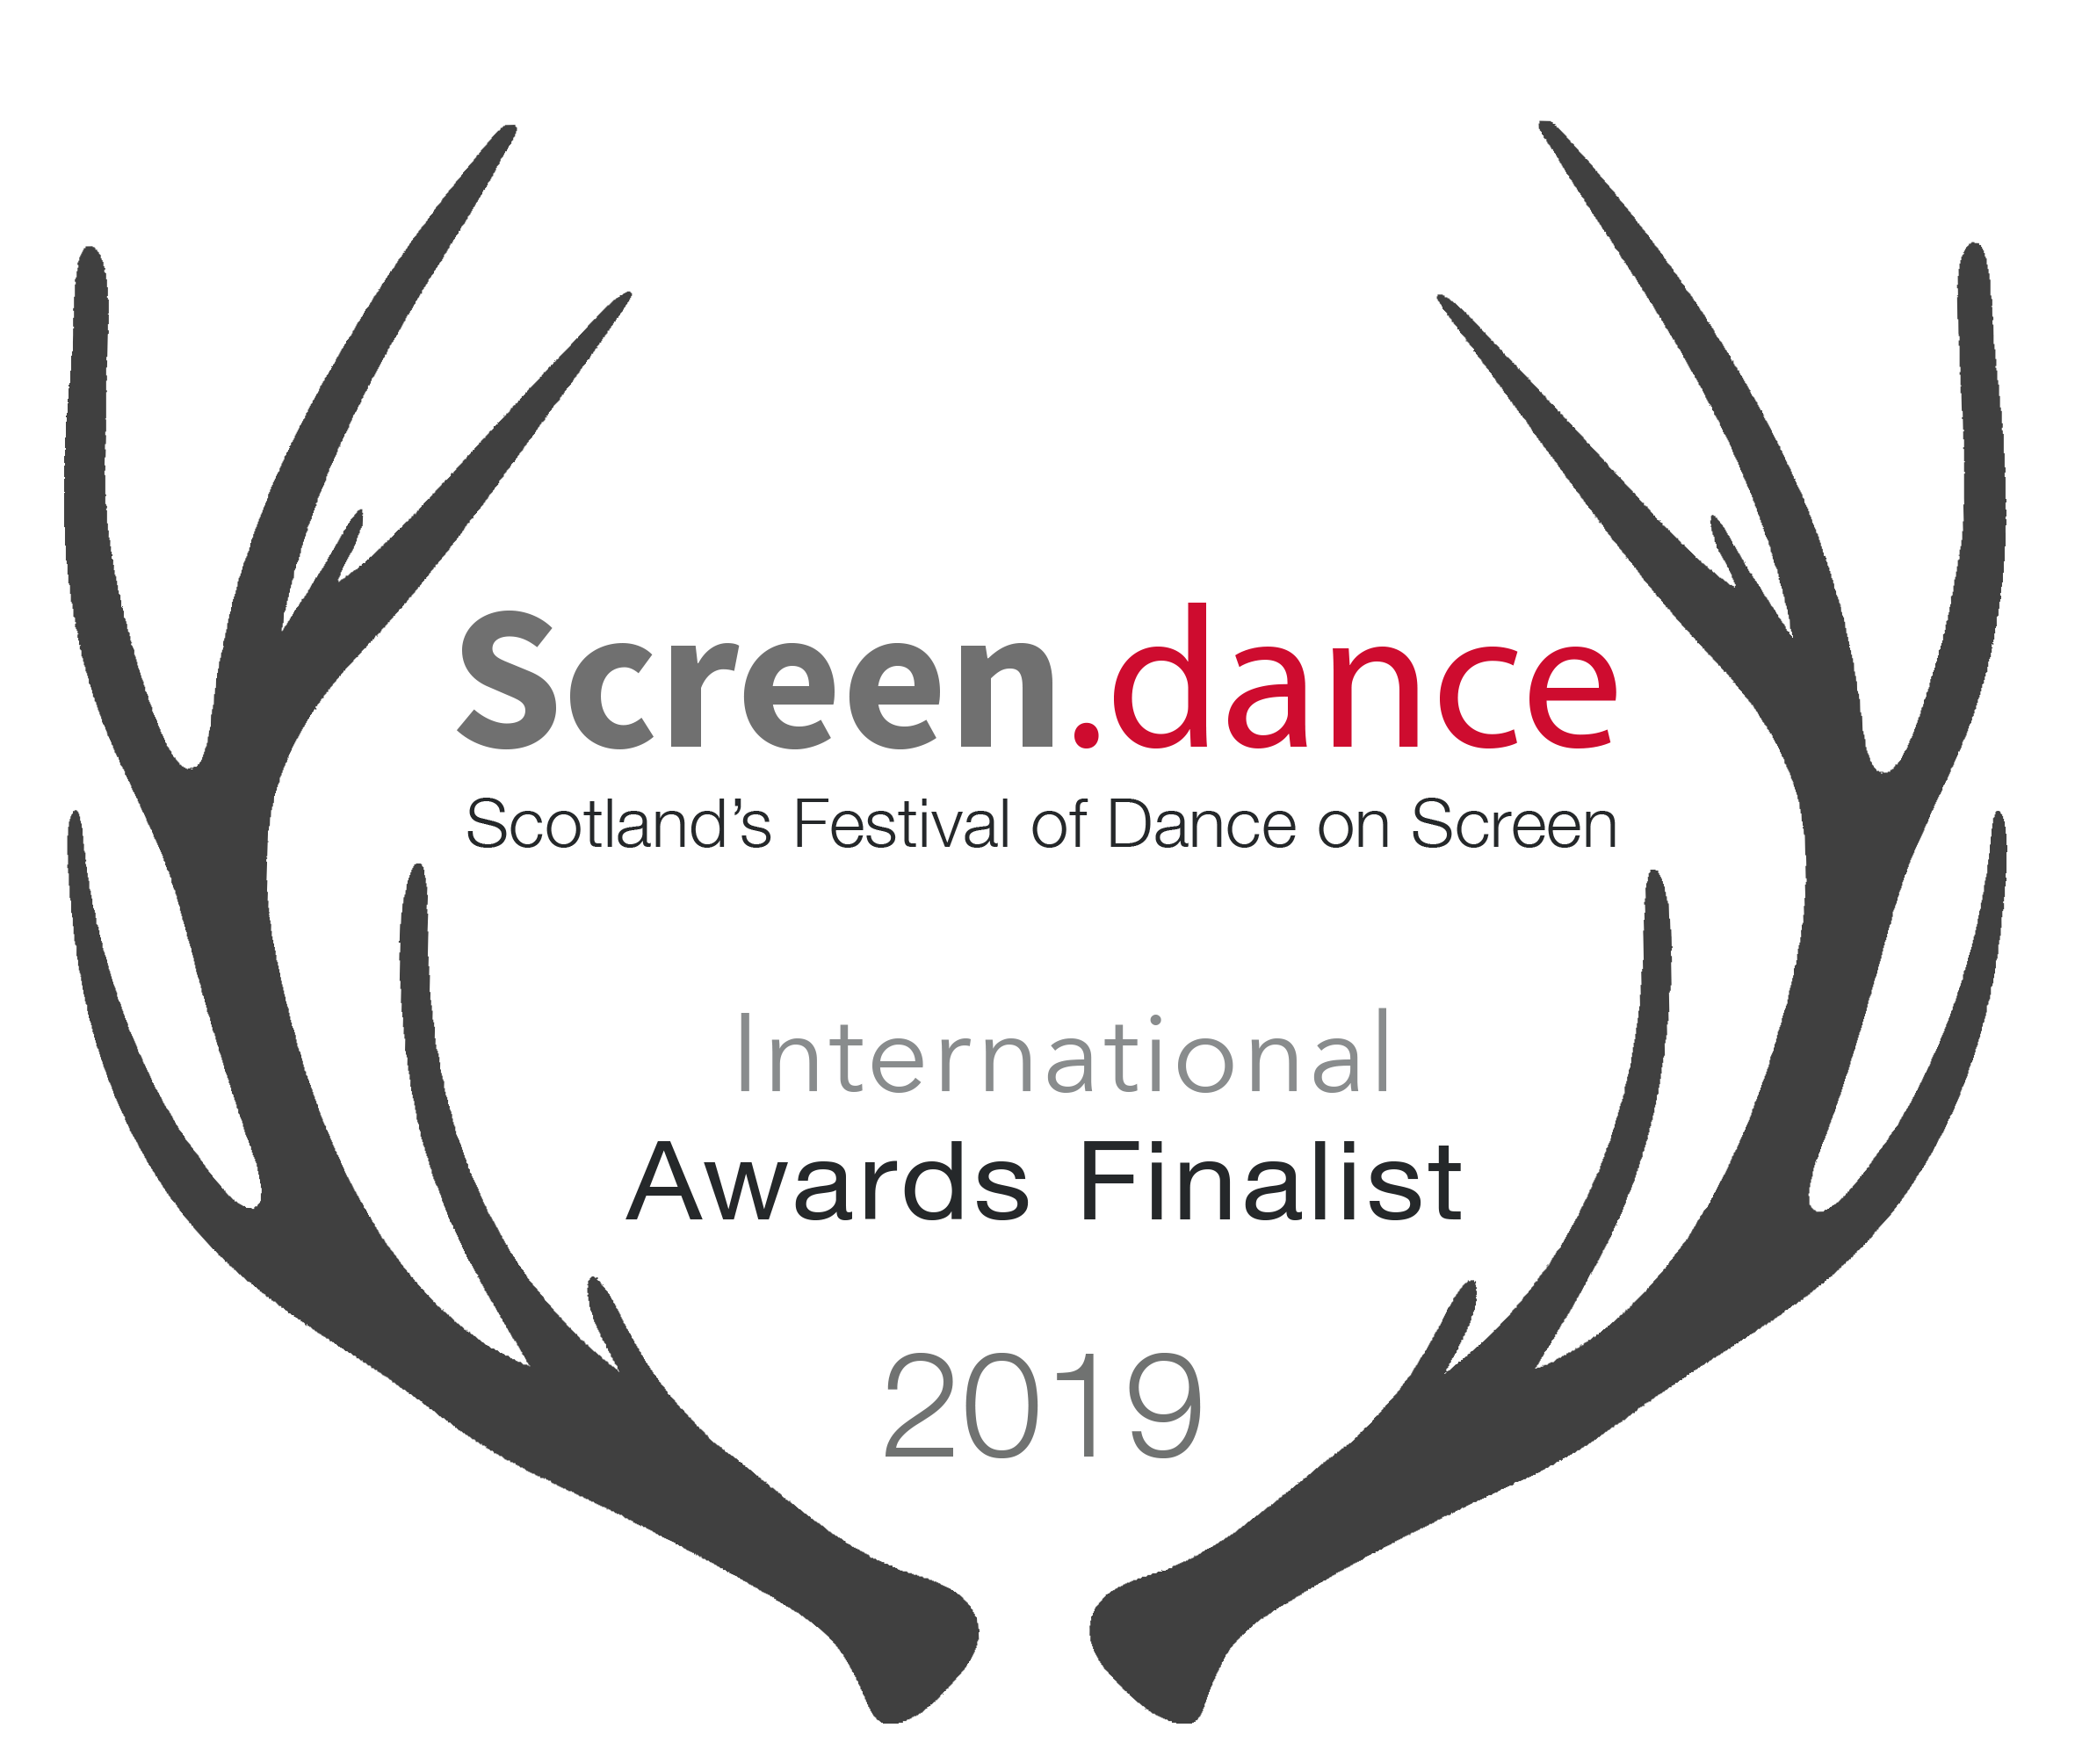 Antlers frame text that reads: Screen dance, Scotland's international